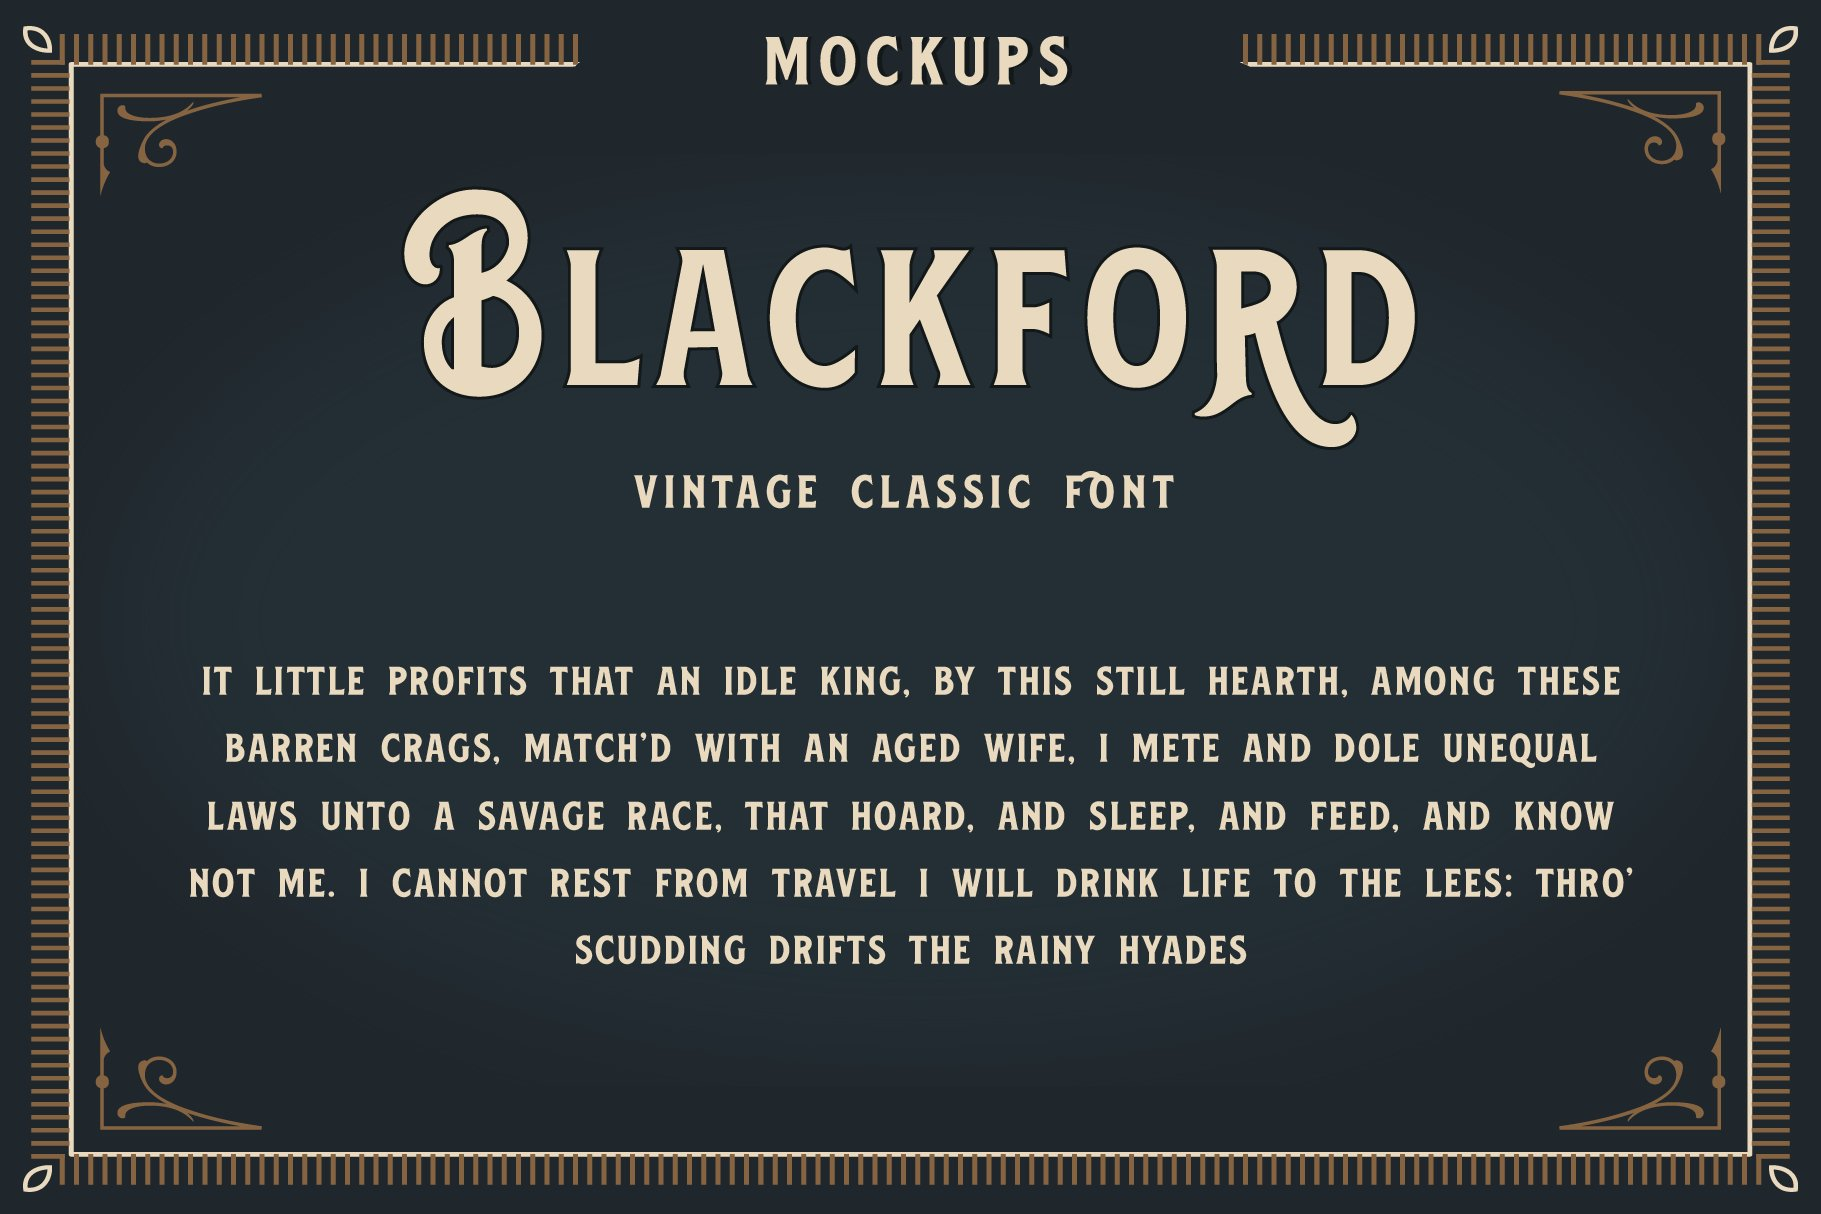 Blackford - Vintage Classic Font example image 3